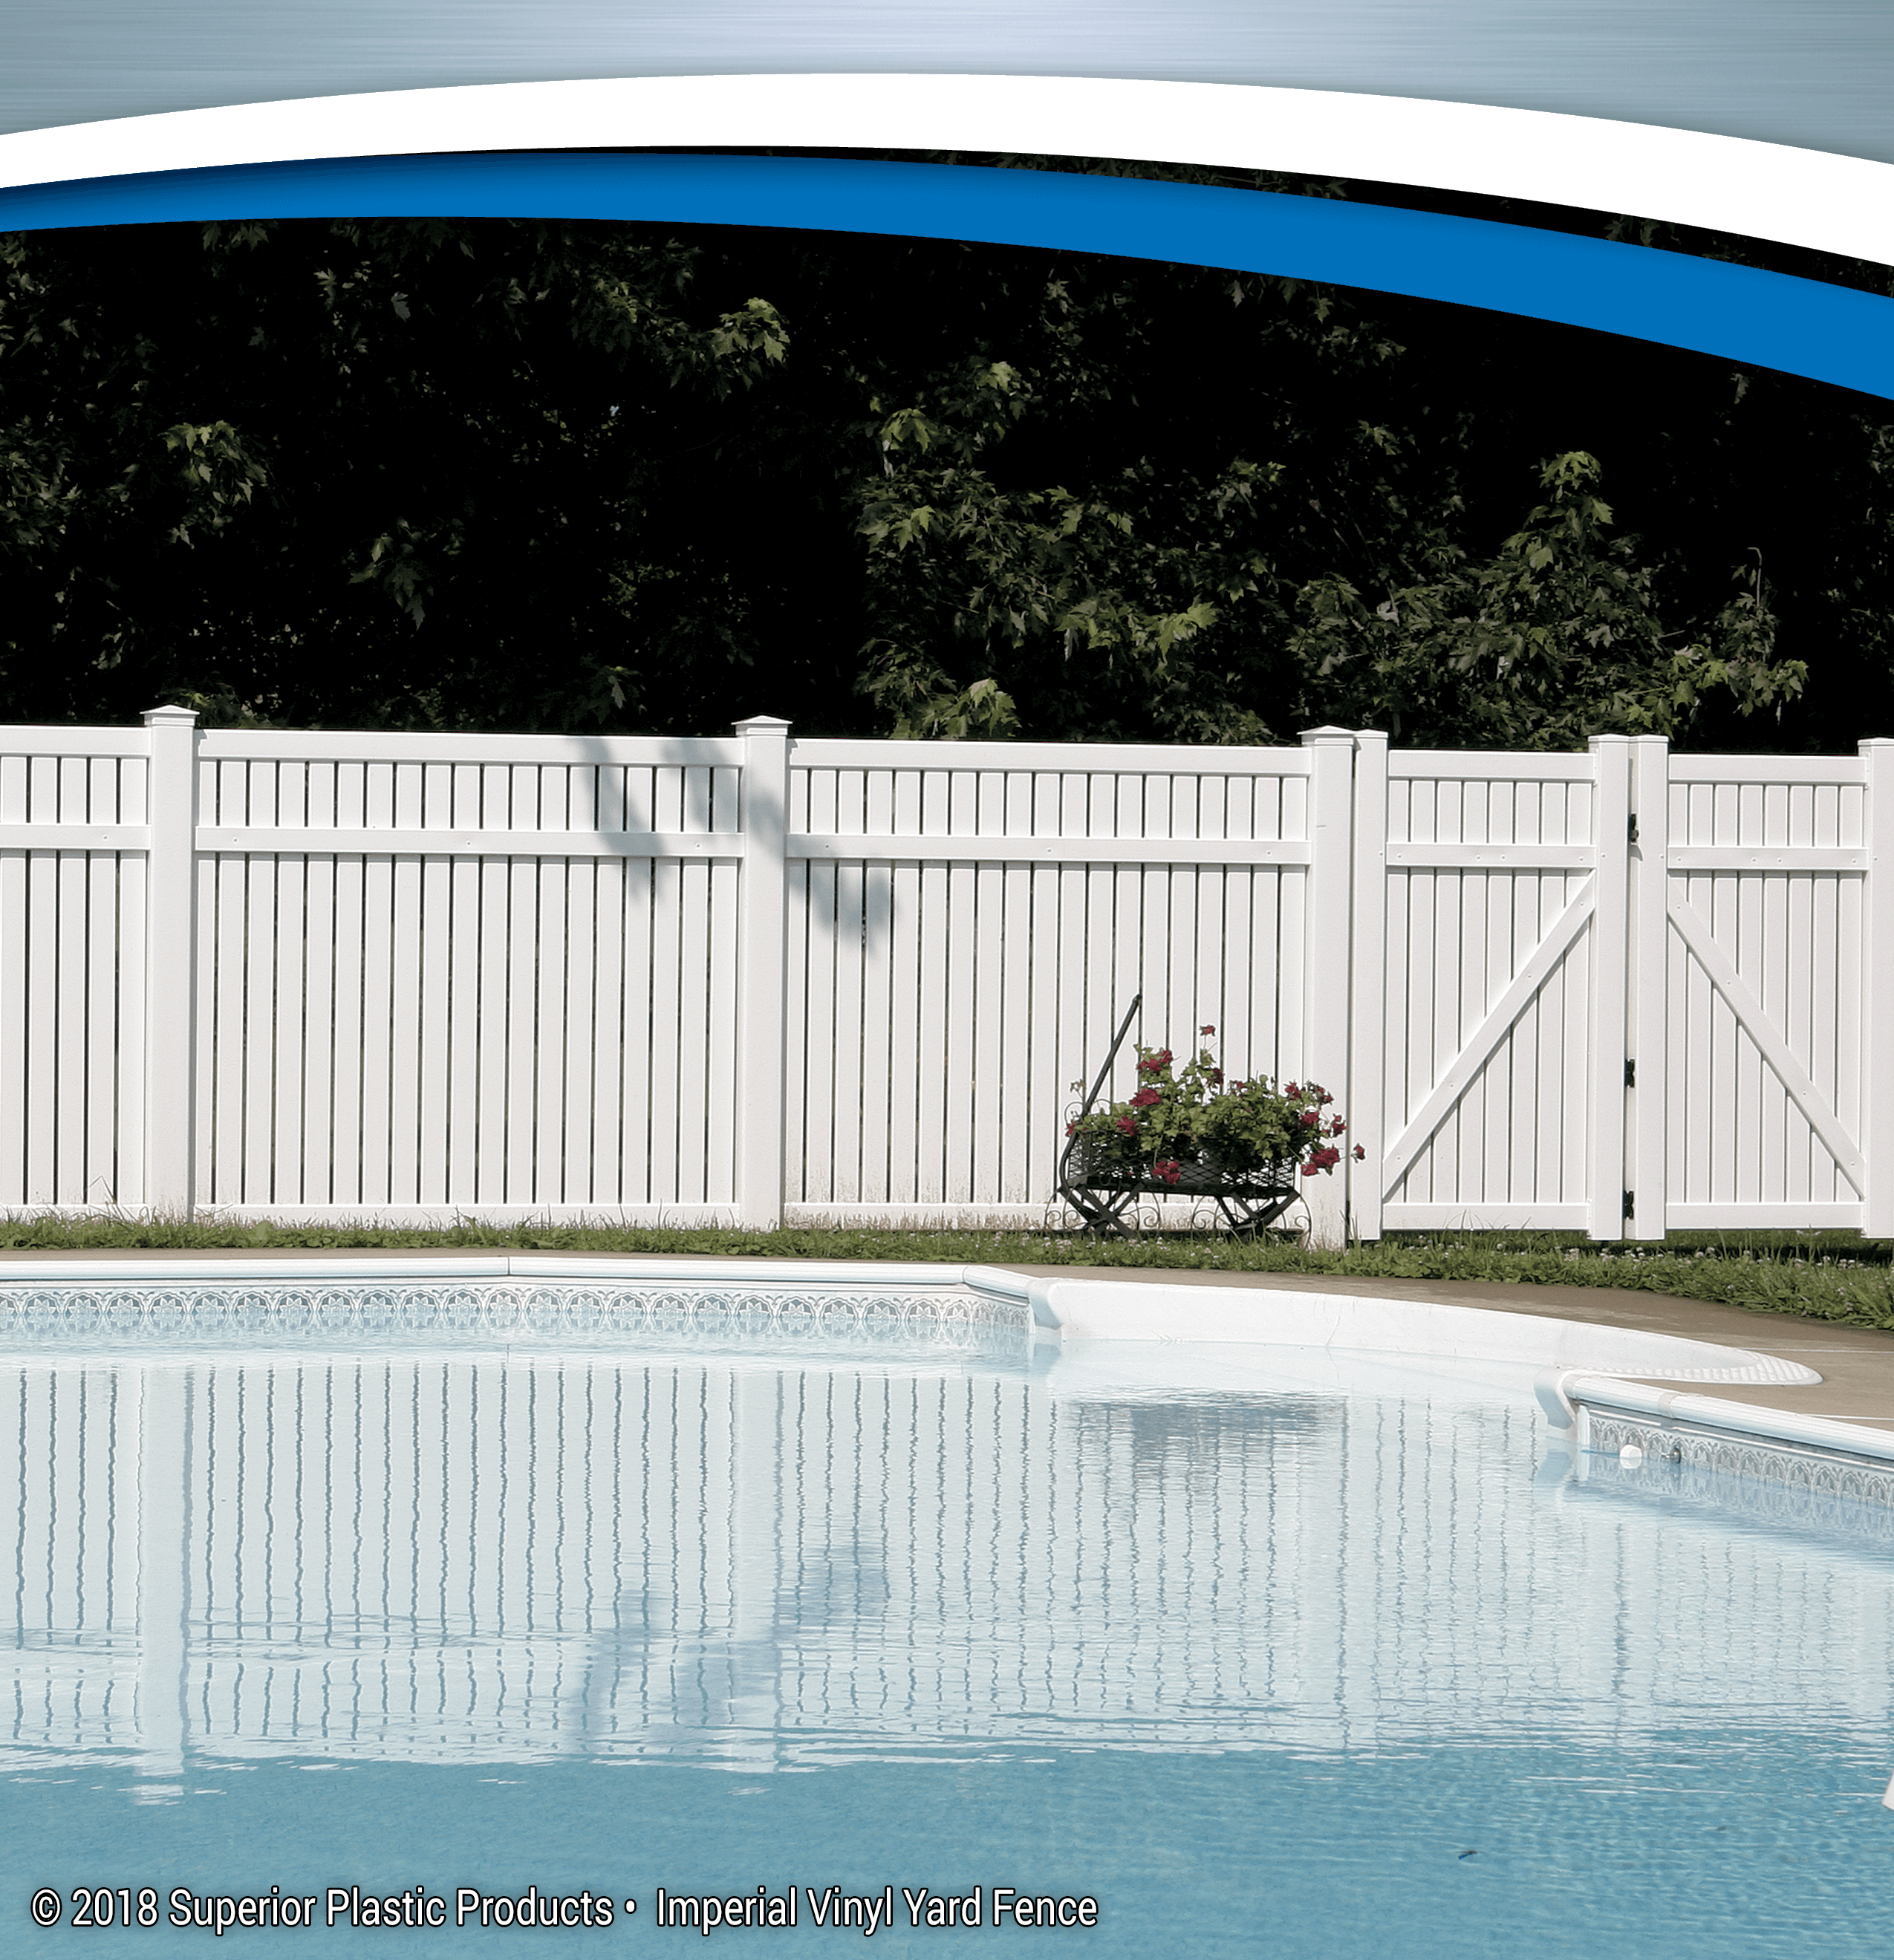 & Imperial Vinyl Yard Fence - Superior Plastic Products